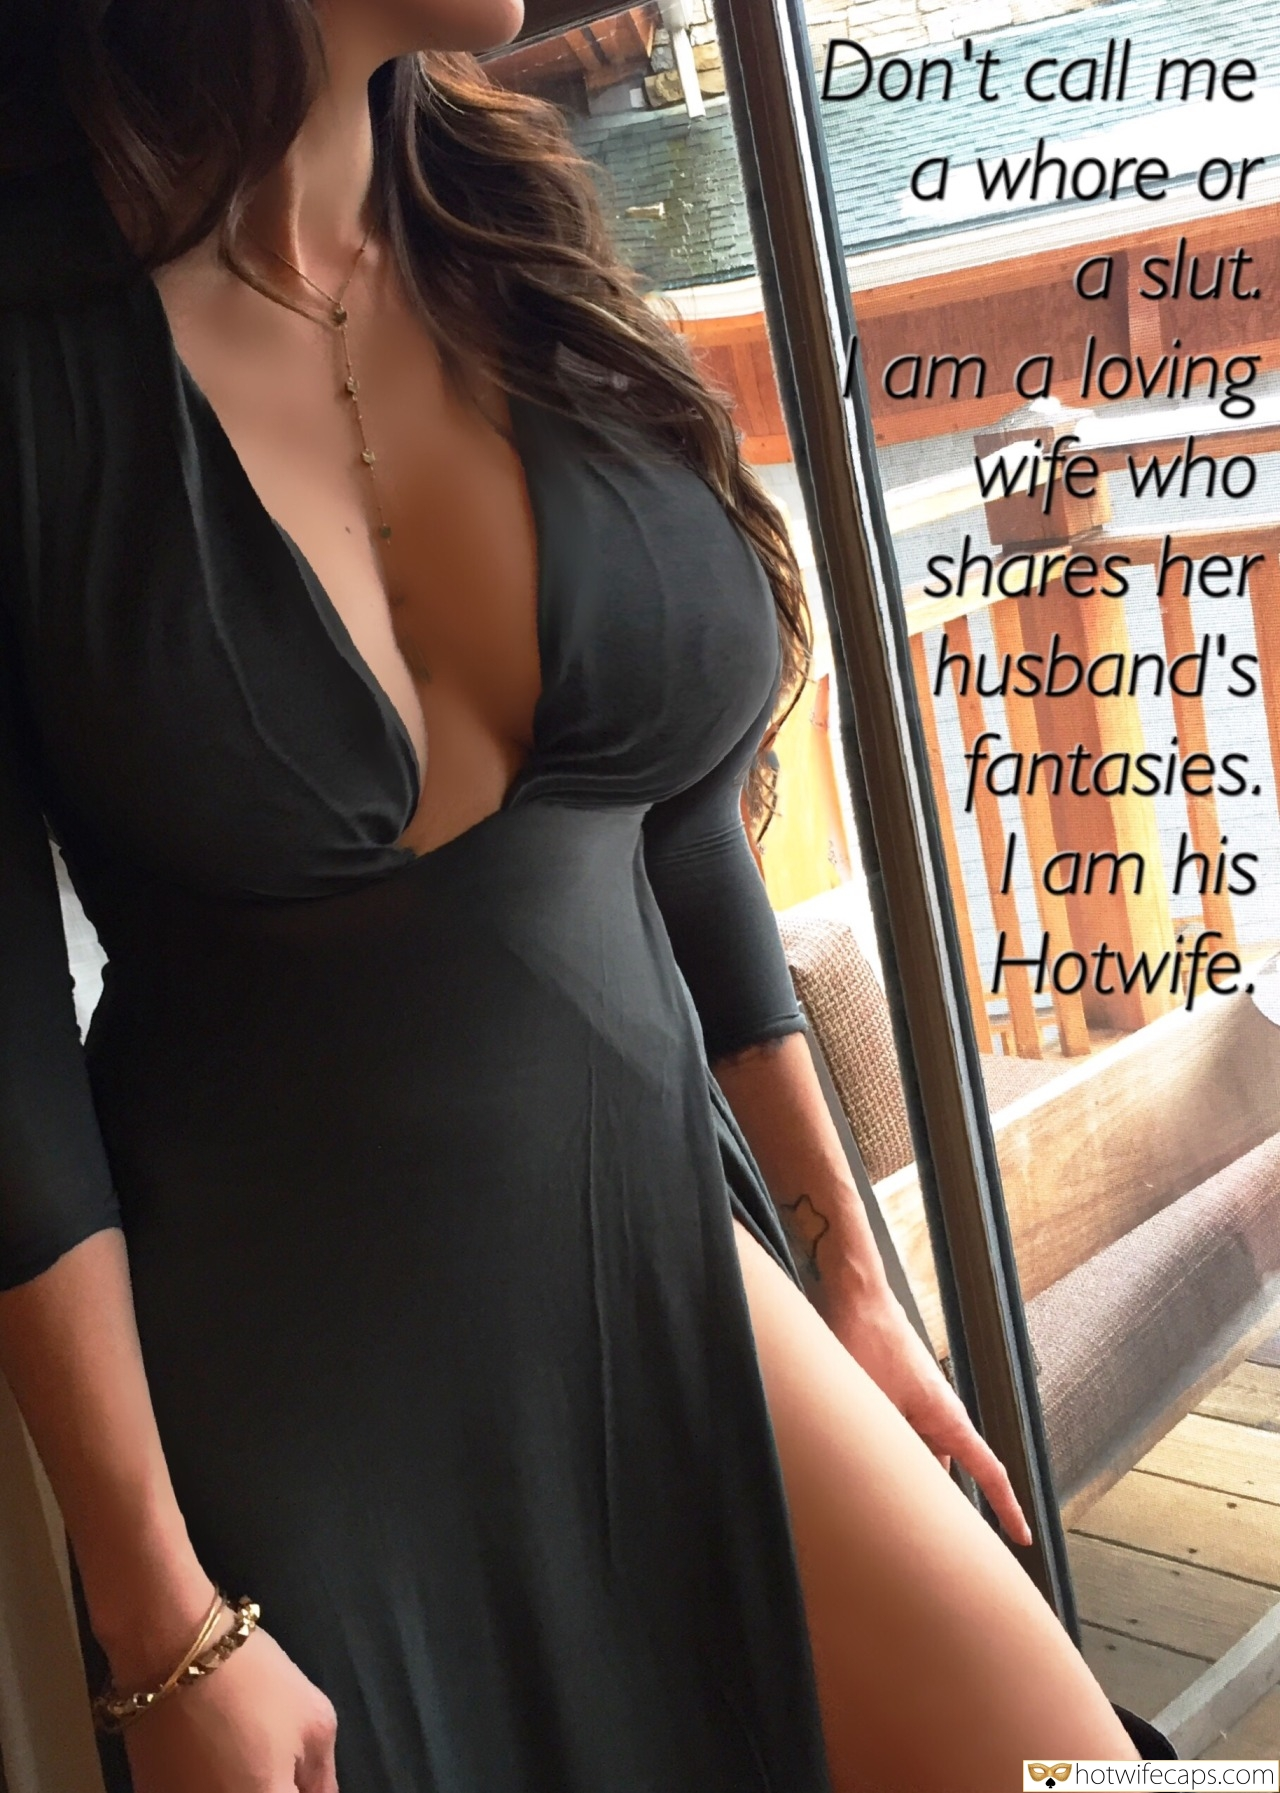 SFW Caps  hotwife caption: Don't call me a whore or a slut. am a loving wife who shares her husband's fantasies. | am his Hotwife, Curvaceous Brunette Poses in Black Dress by the Window